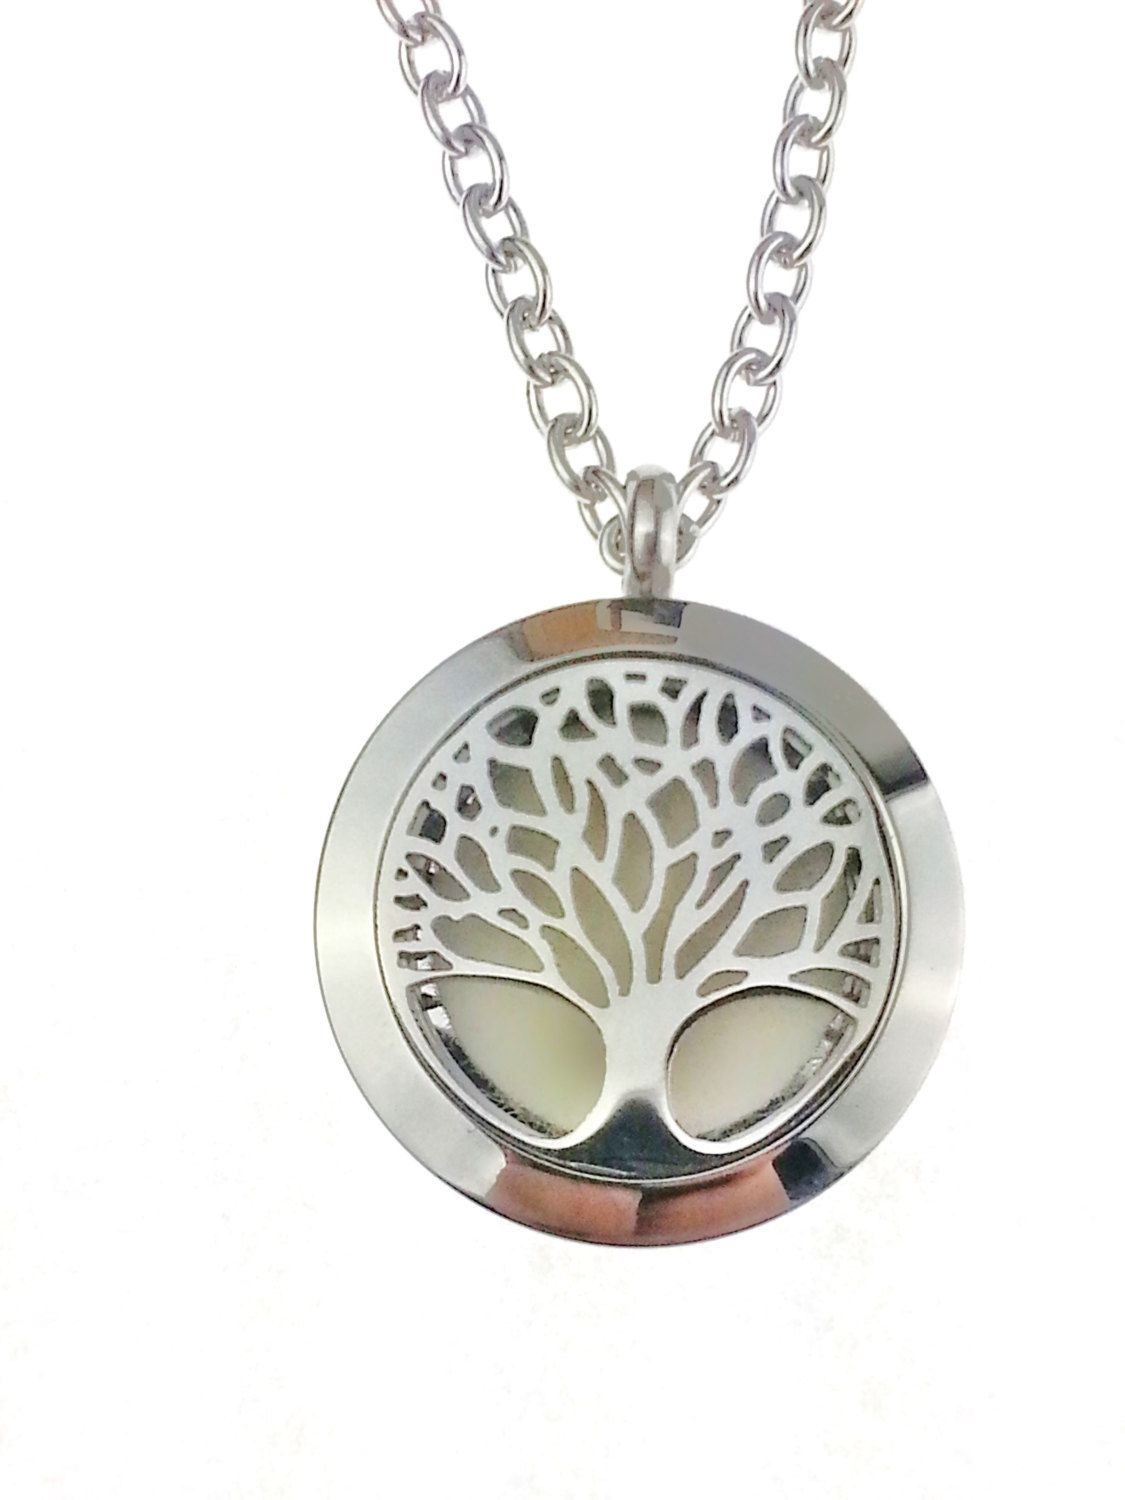 Tree of Life Stainless Steel Diffuser Necklace Pendant Chain Round DIY Crystal